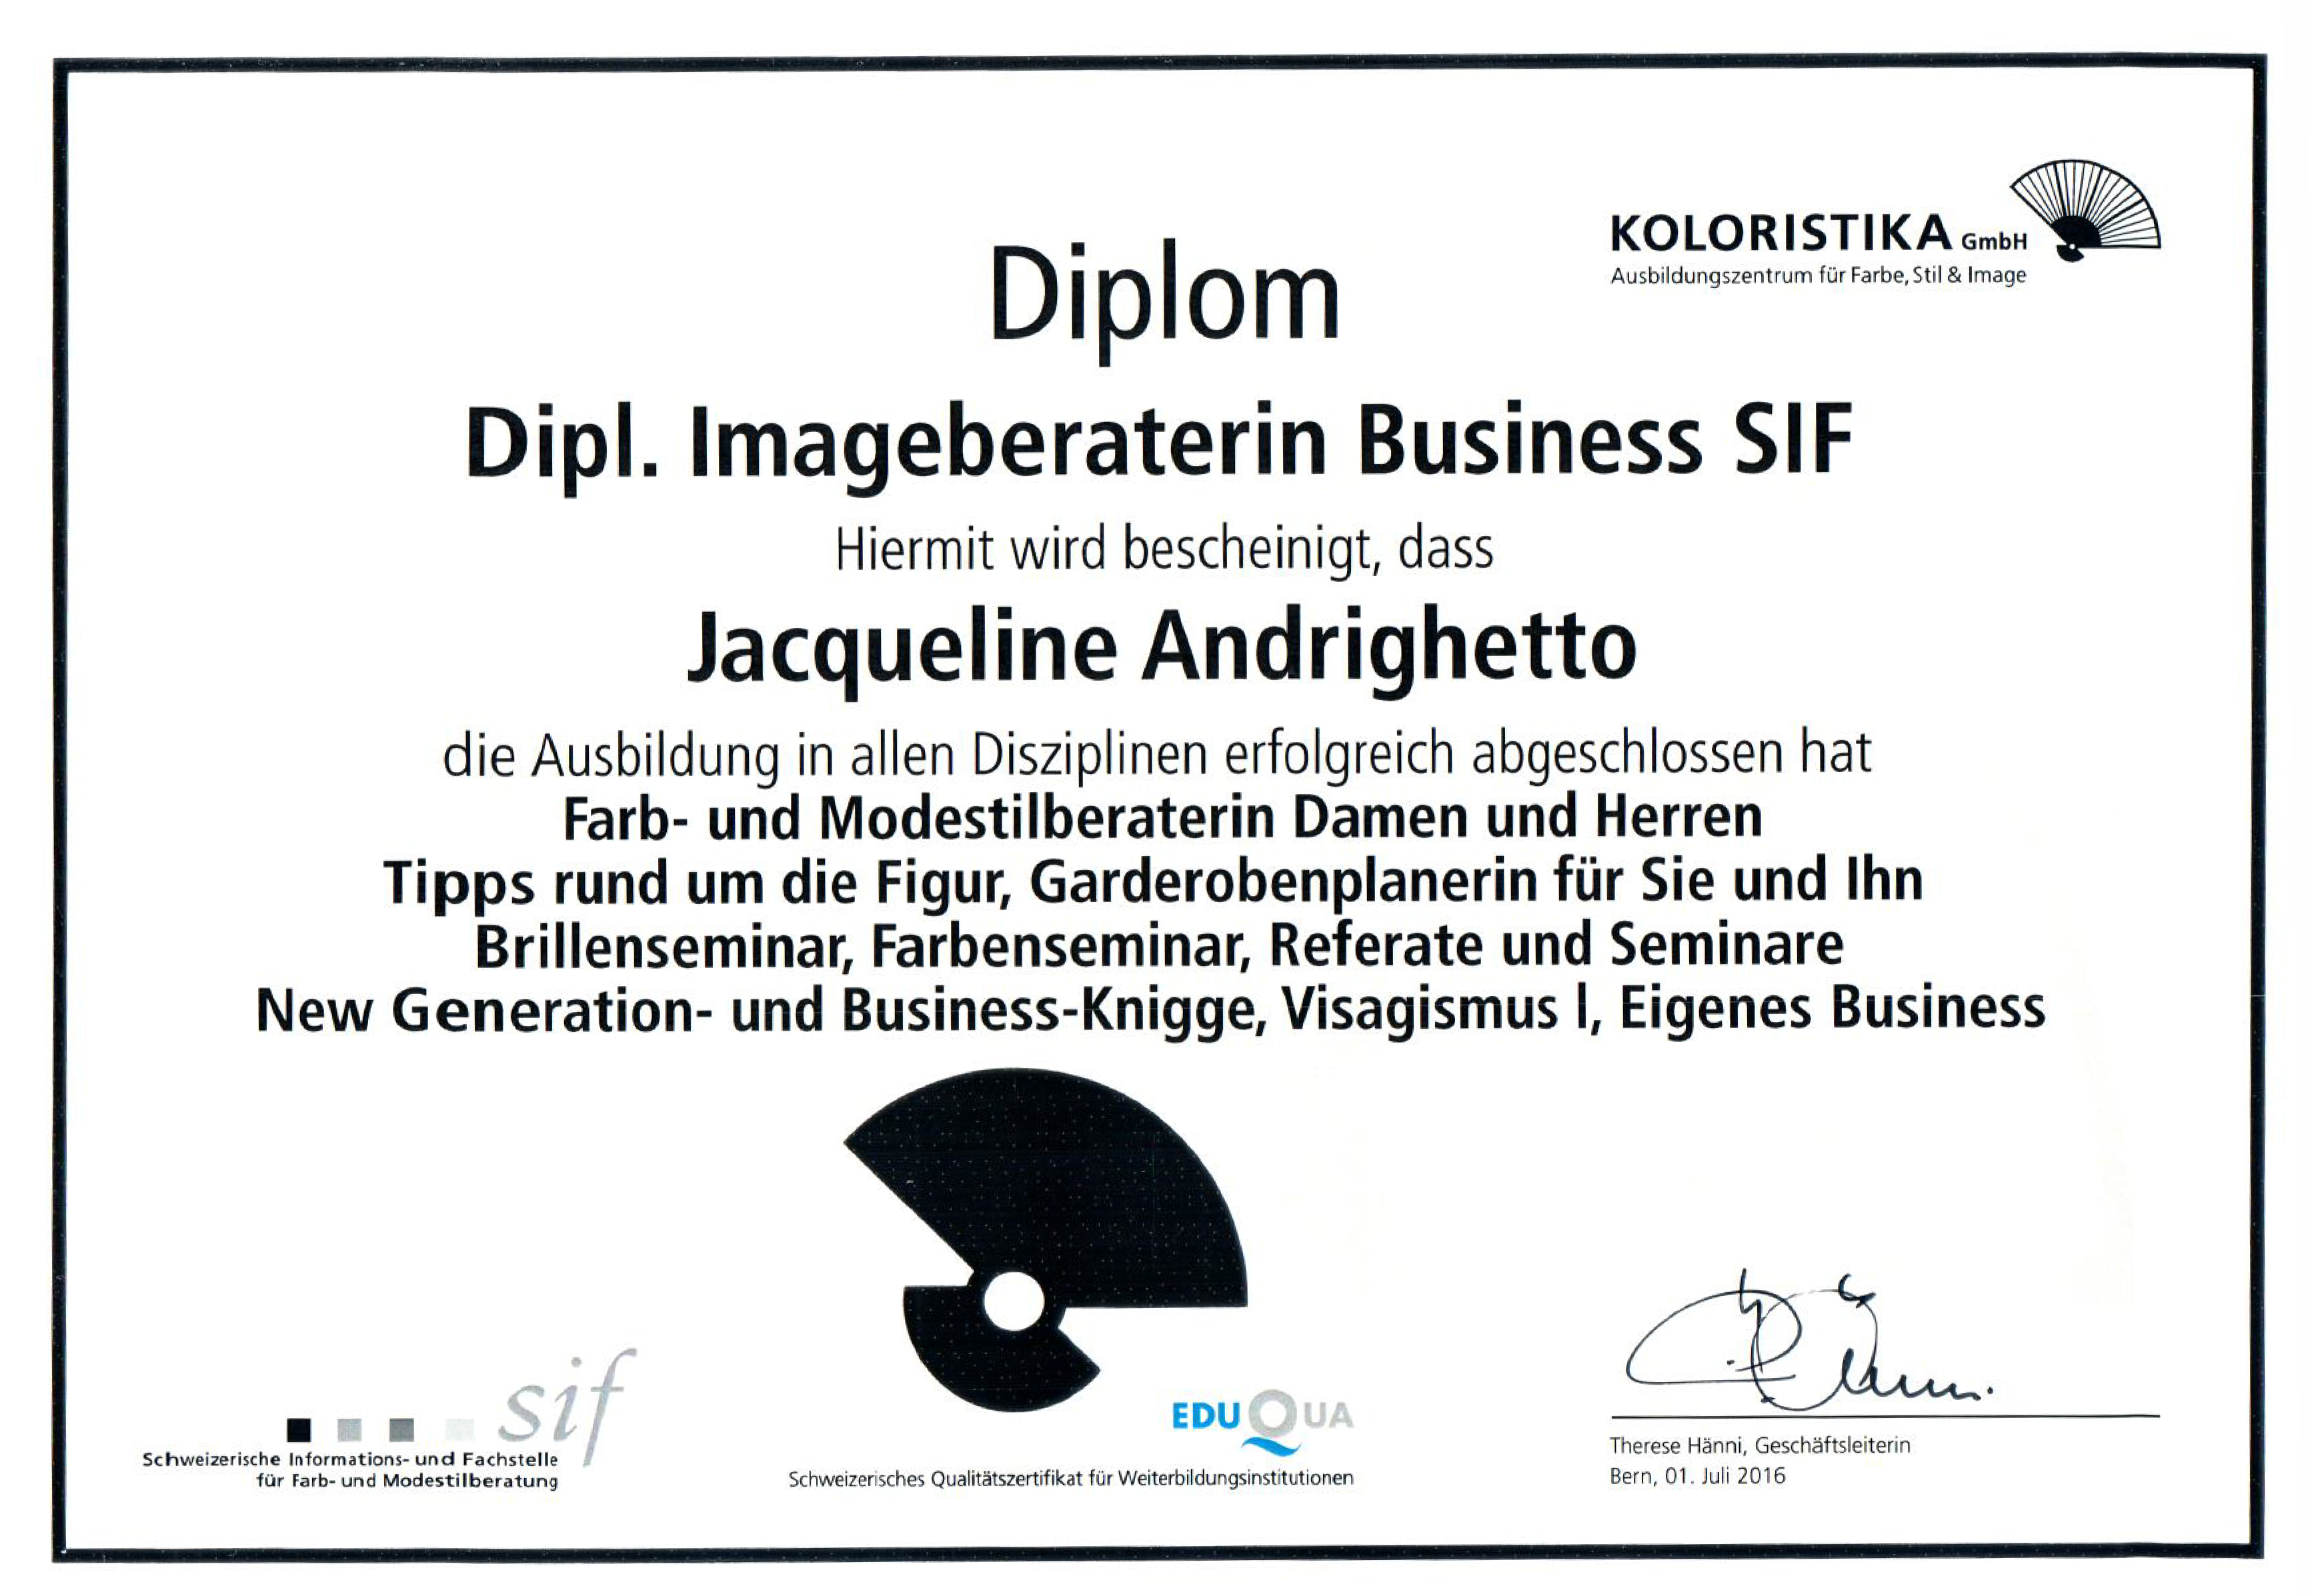 Dipl. Imageberaterin Business SIF